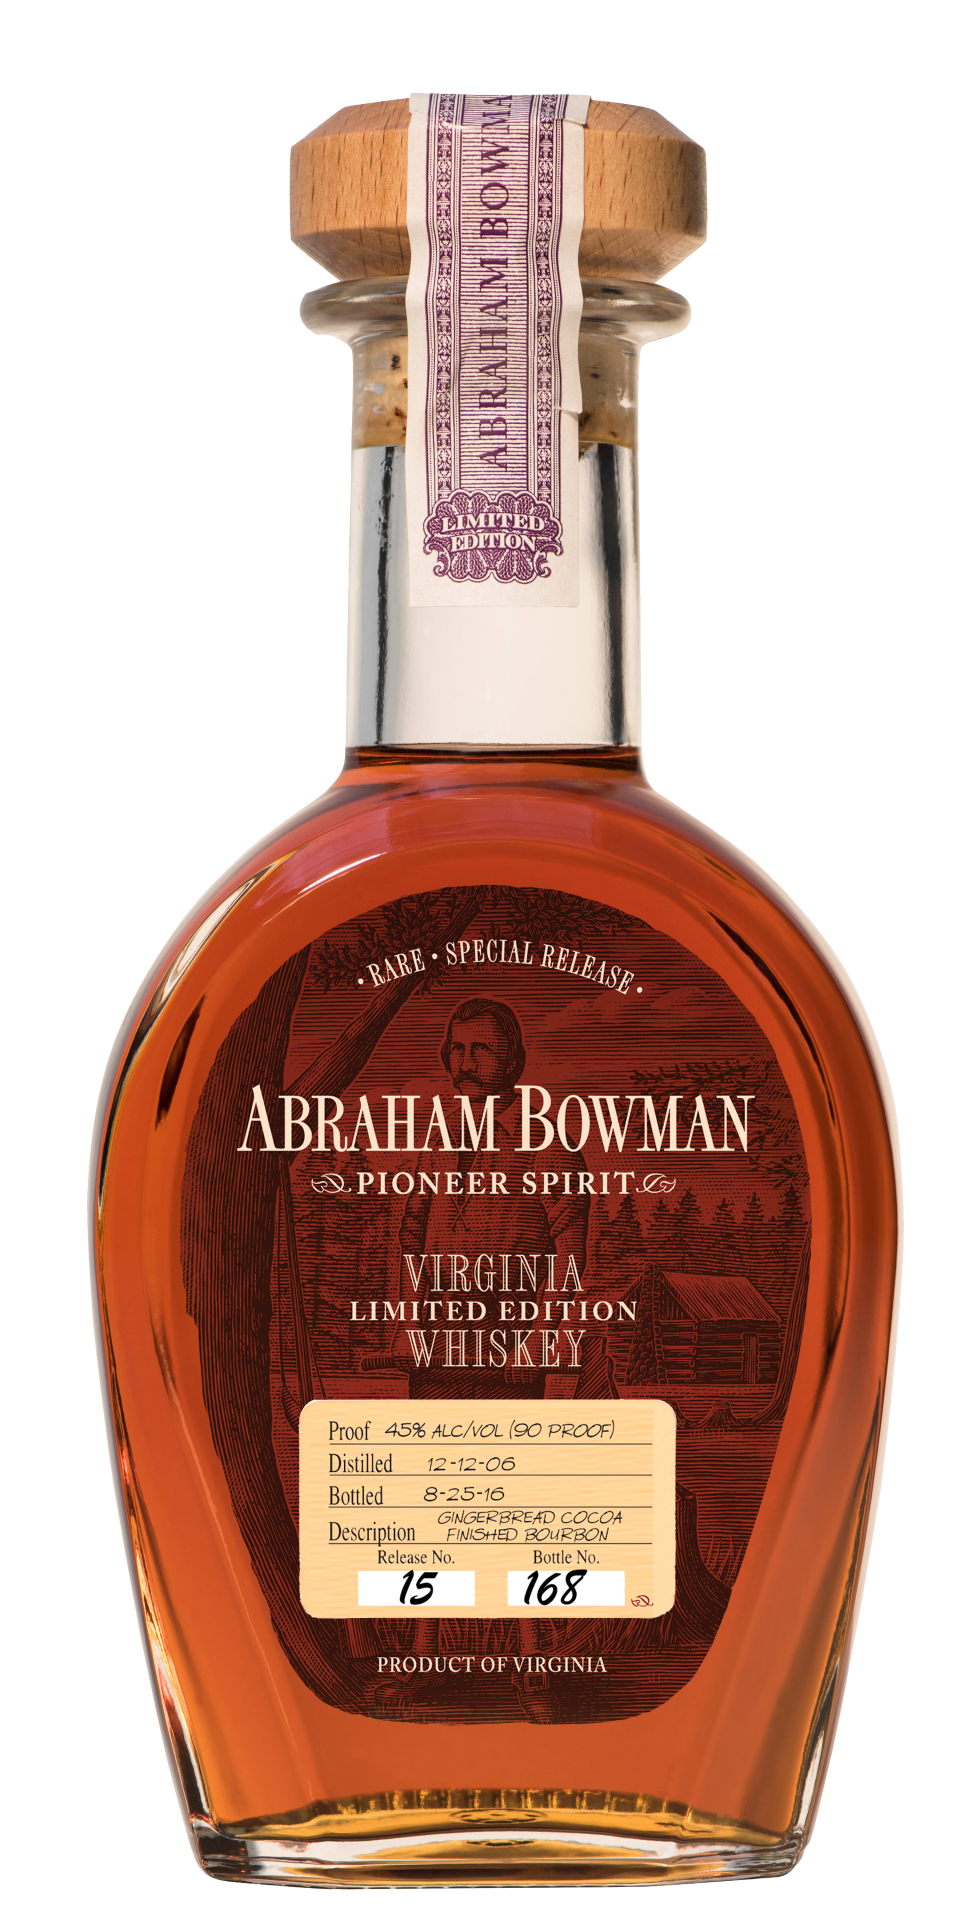 A. Smith Bowman Abraham Bowman Gingerbread Cocoa Finished Bourbon